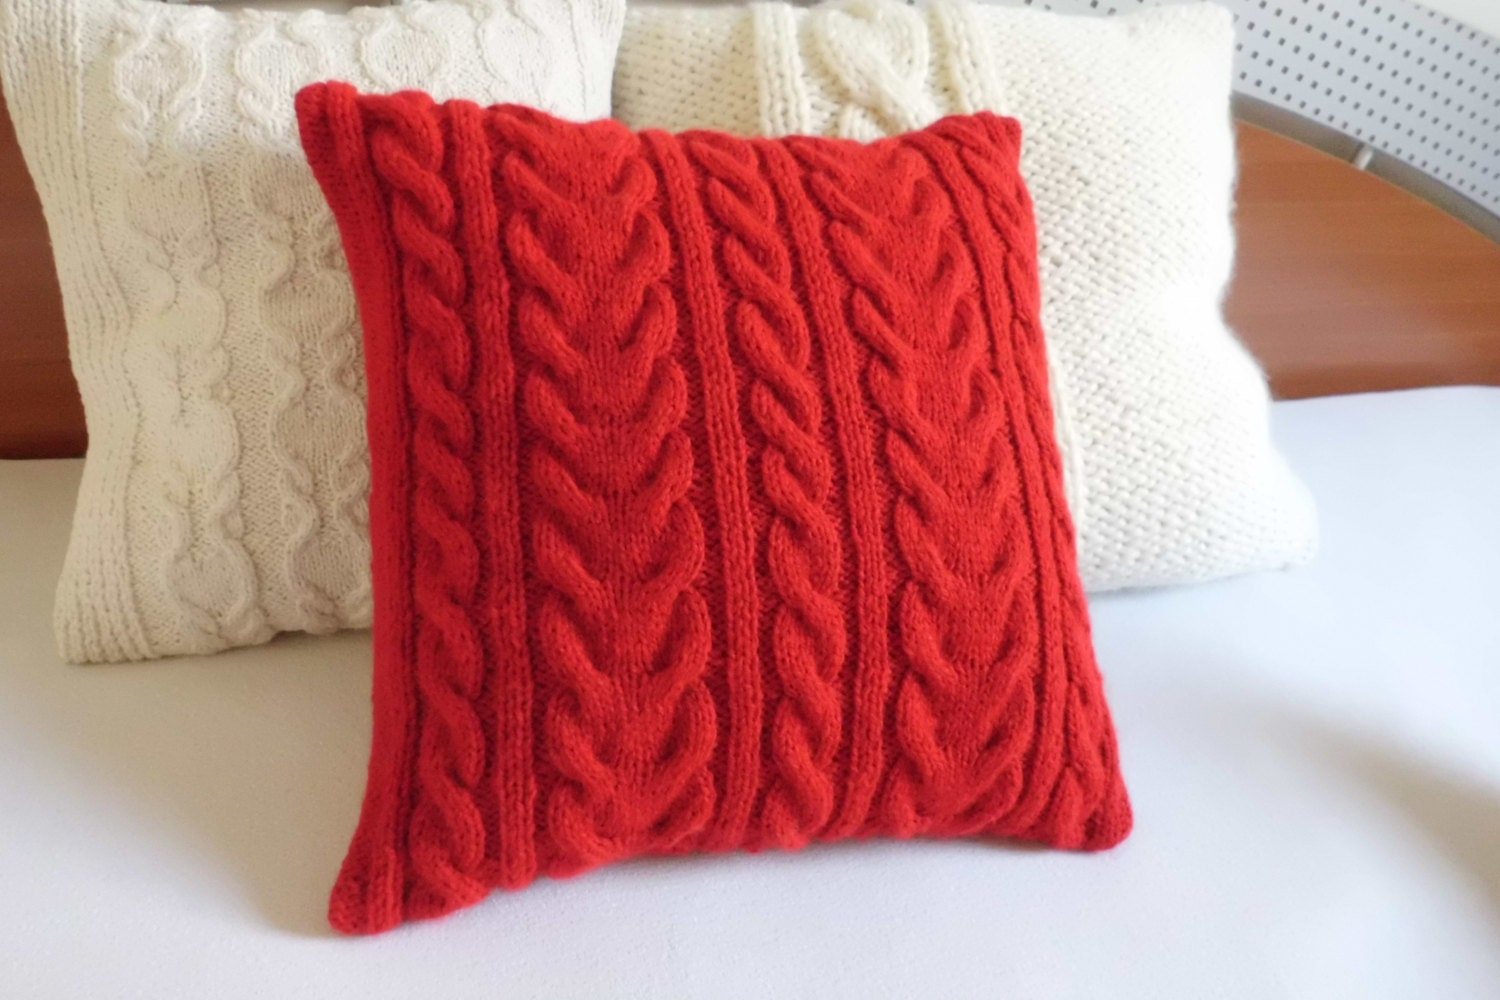 Red Cable Knit Pillow Cover Home Decor